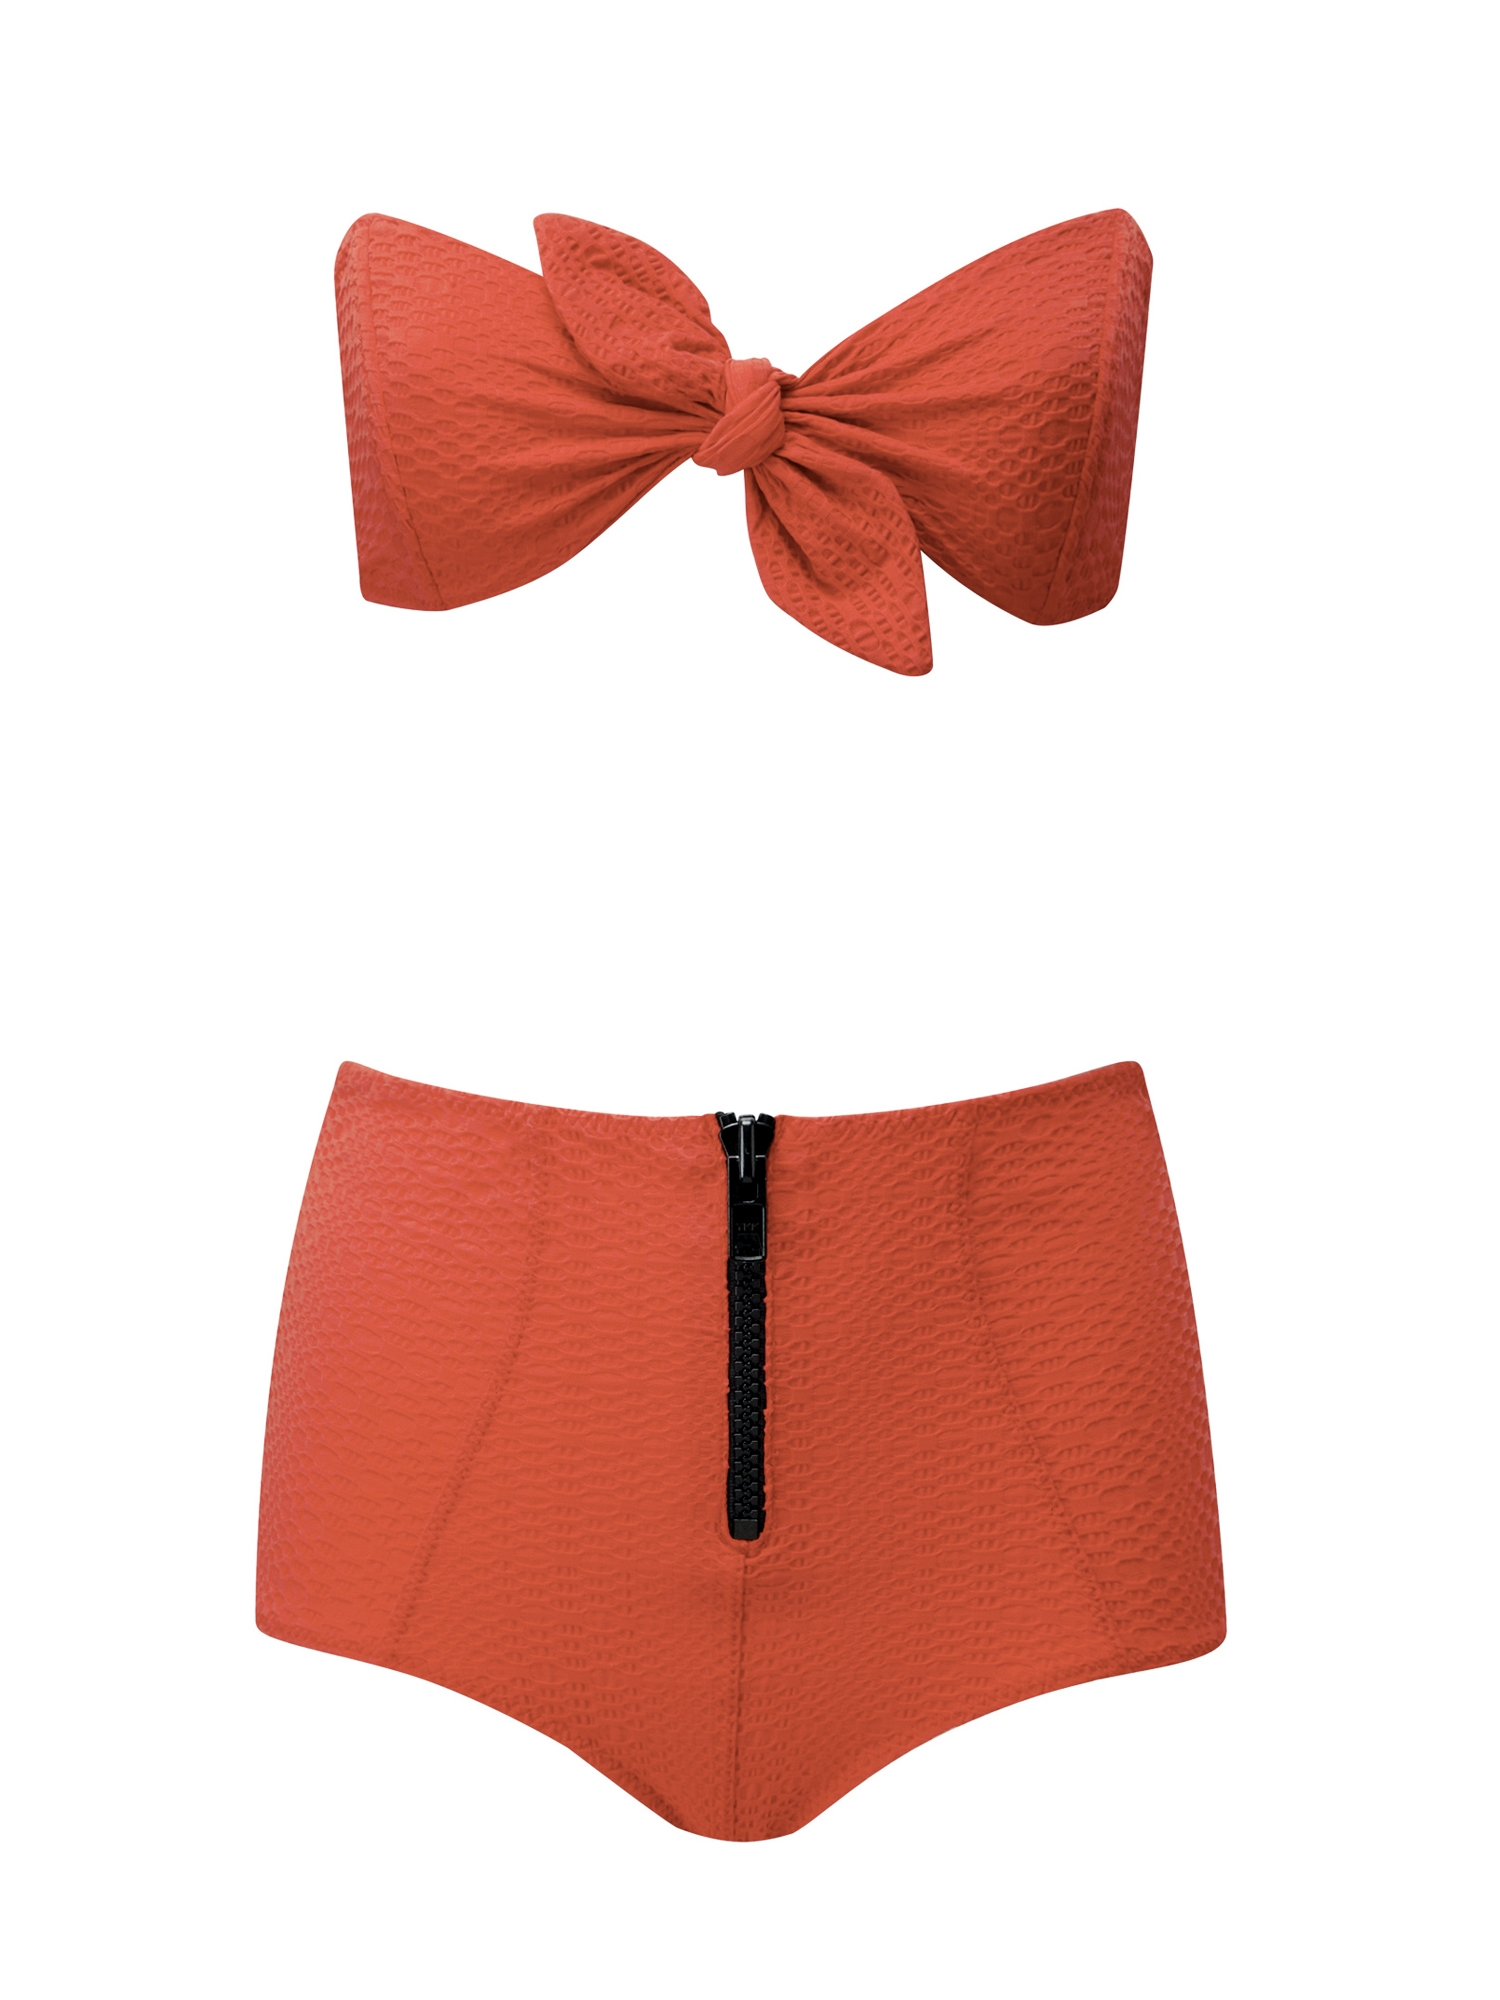 POPPY PUCKER HIGH-WAIST BIKINI